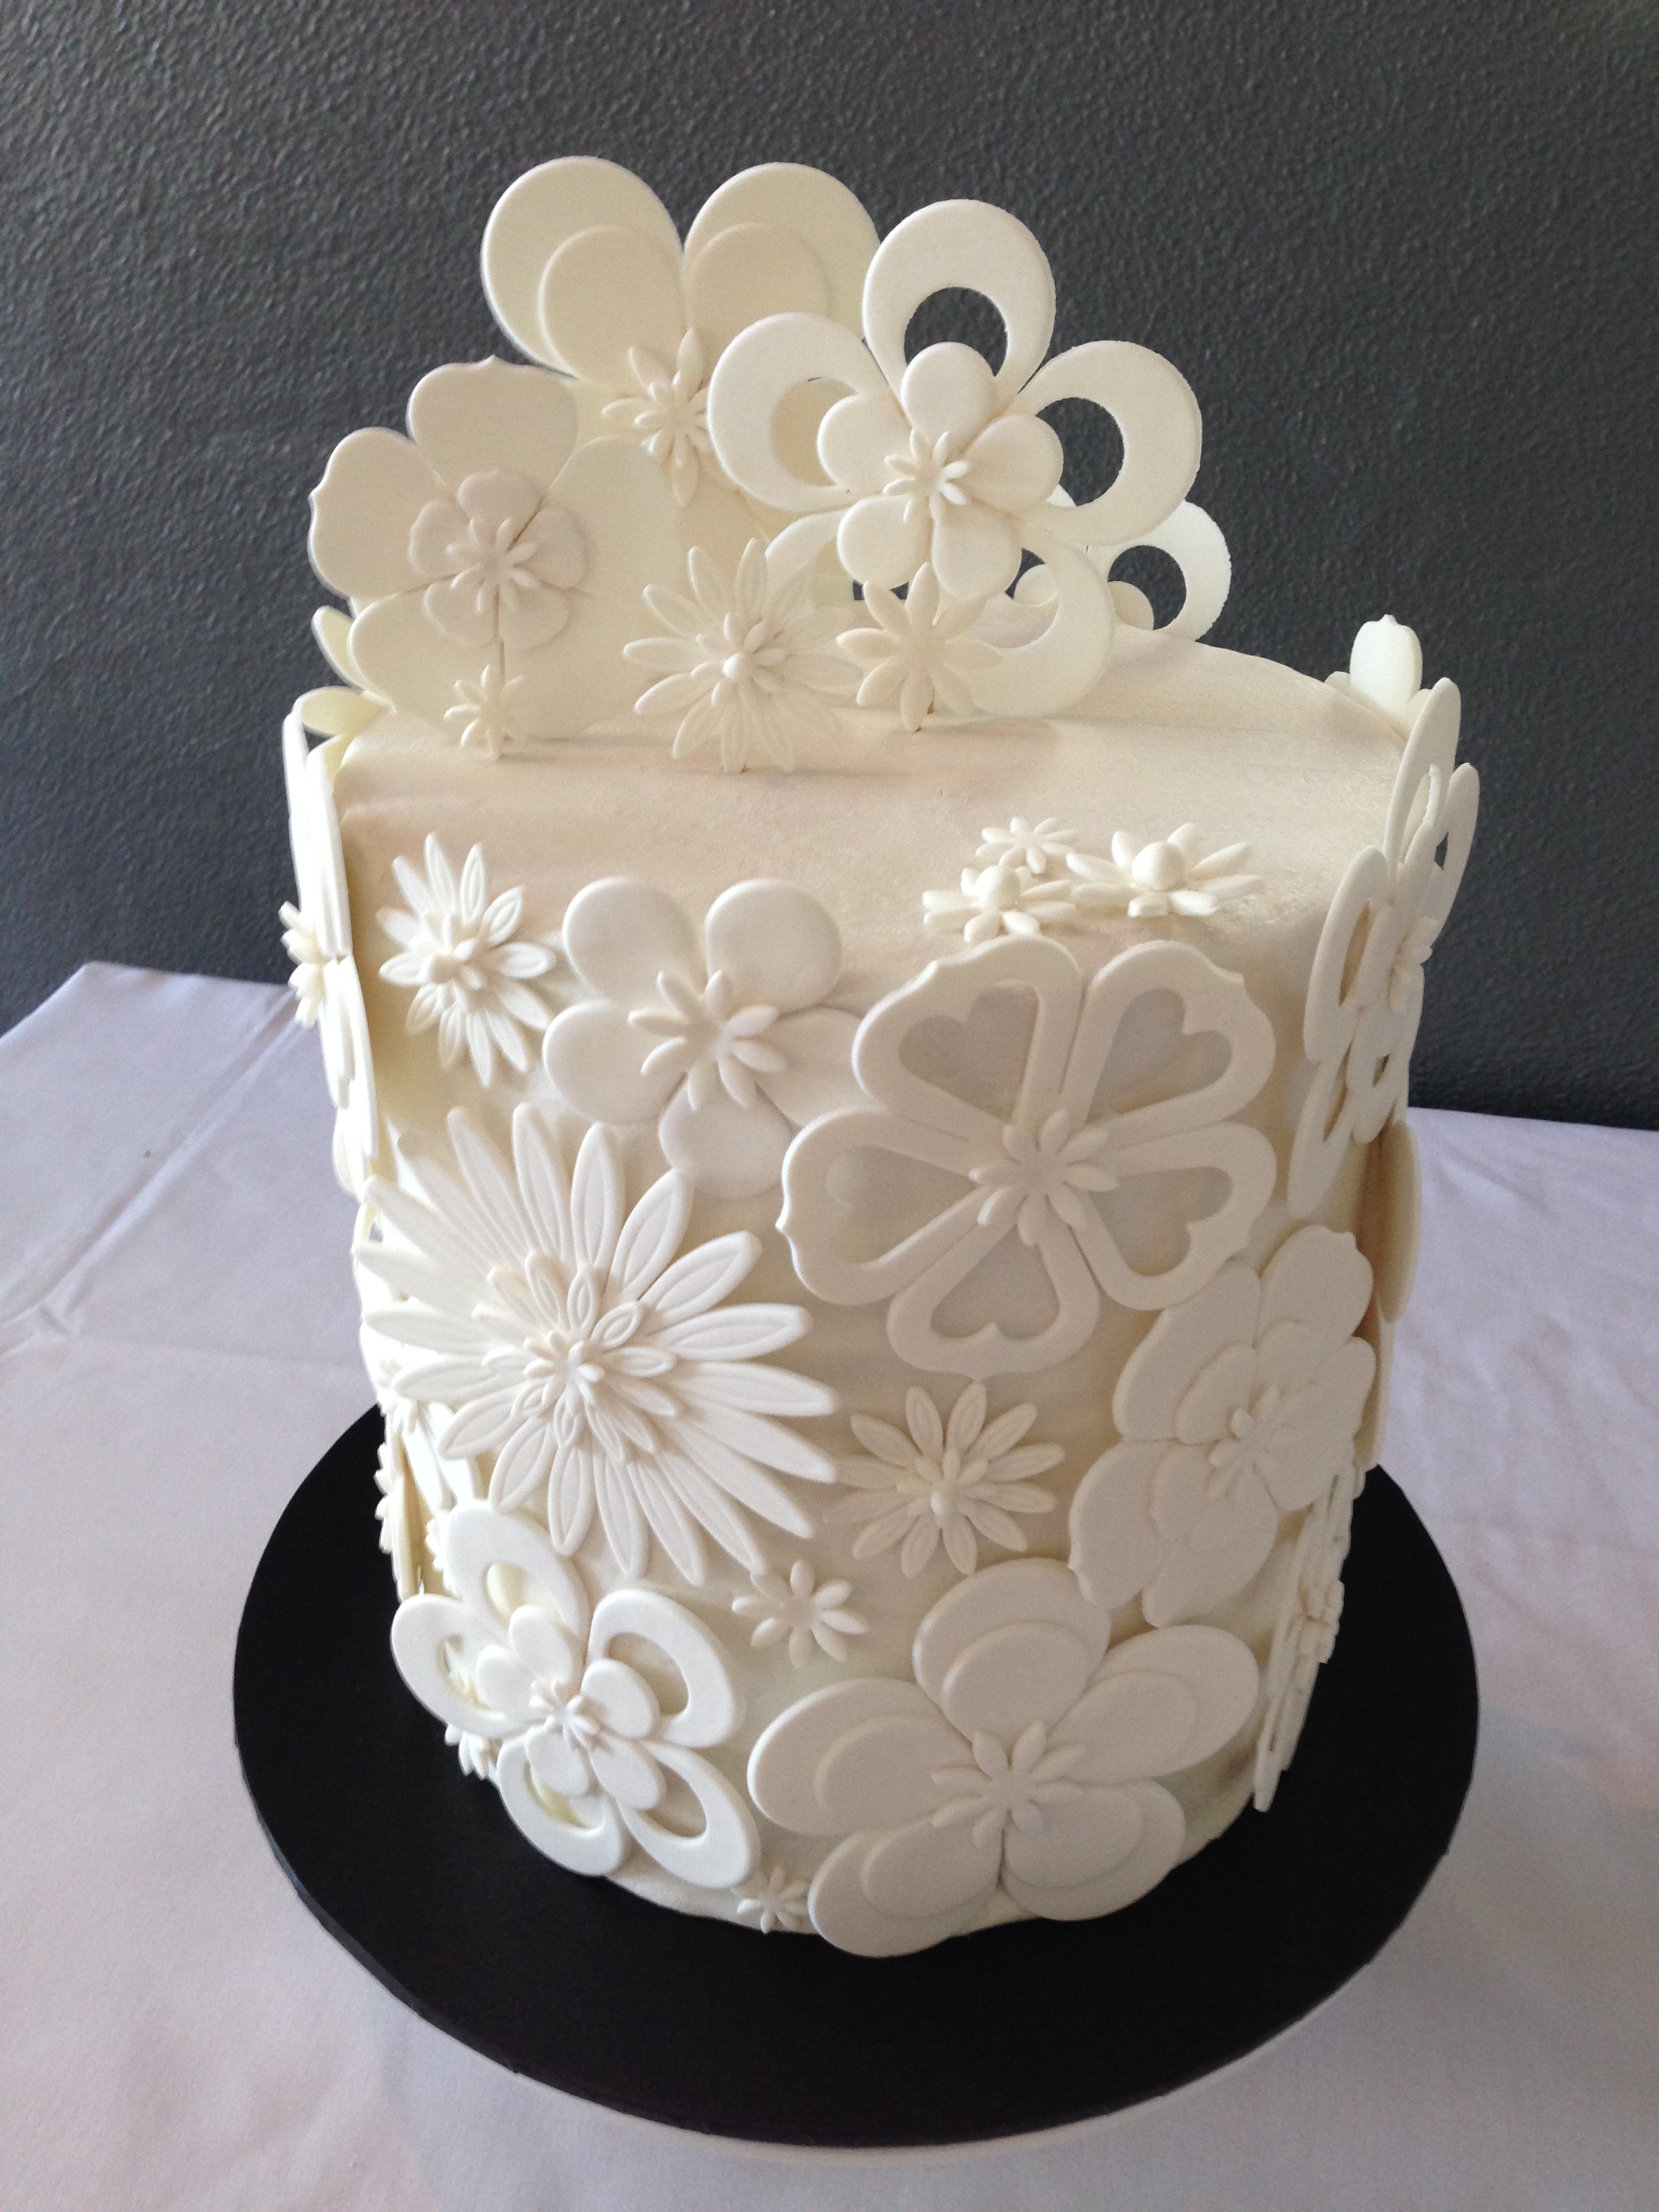 White Cut Out Flower Wedding Cake - CakeCentral.com